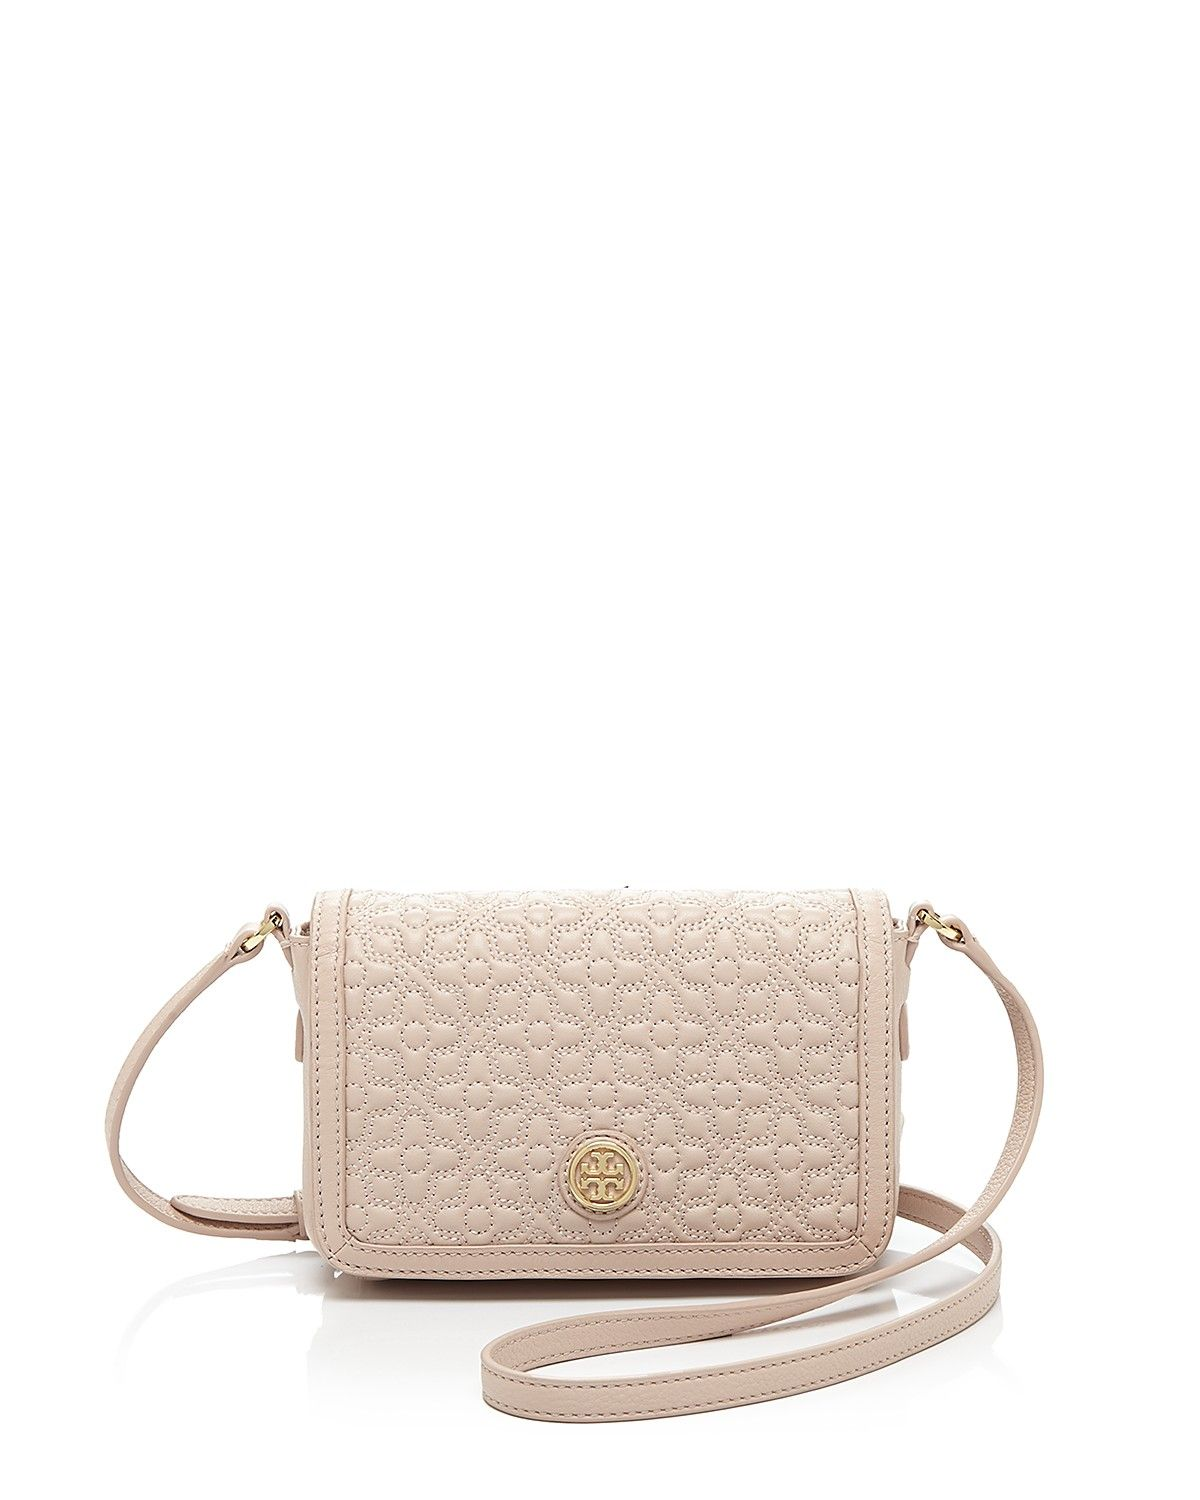 Tory Burch Mini Bag Bloomingdale S Exclusive Quilted